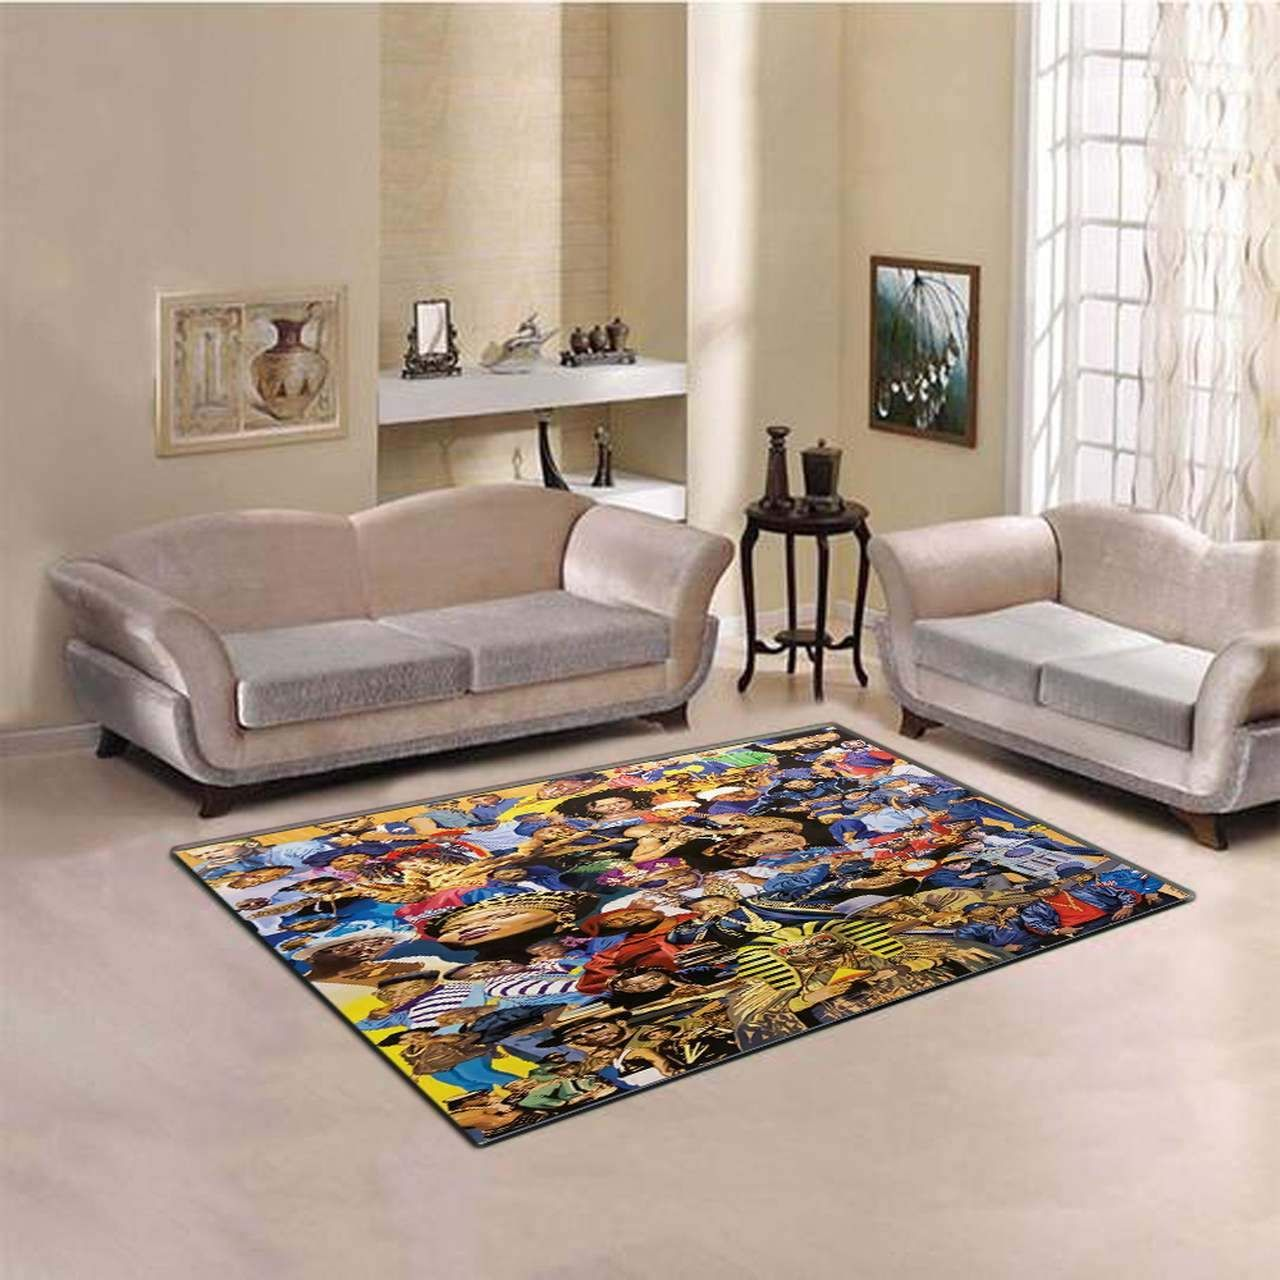 The Art Of Hip Hop Area Rugs Living Room Carpet Christmas Gift Floor Decor RCDD81F33345